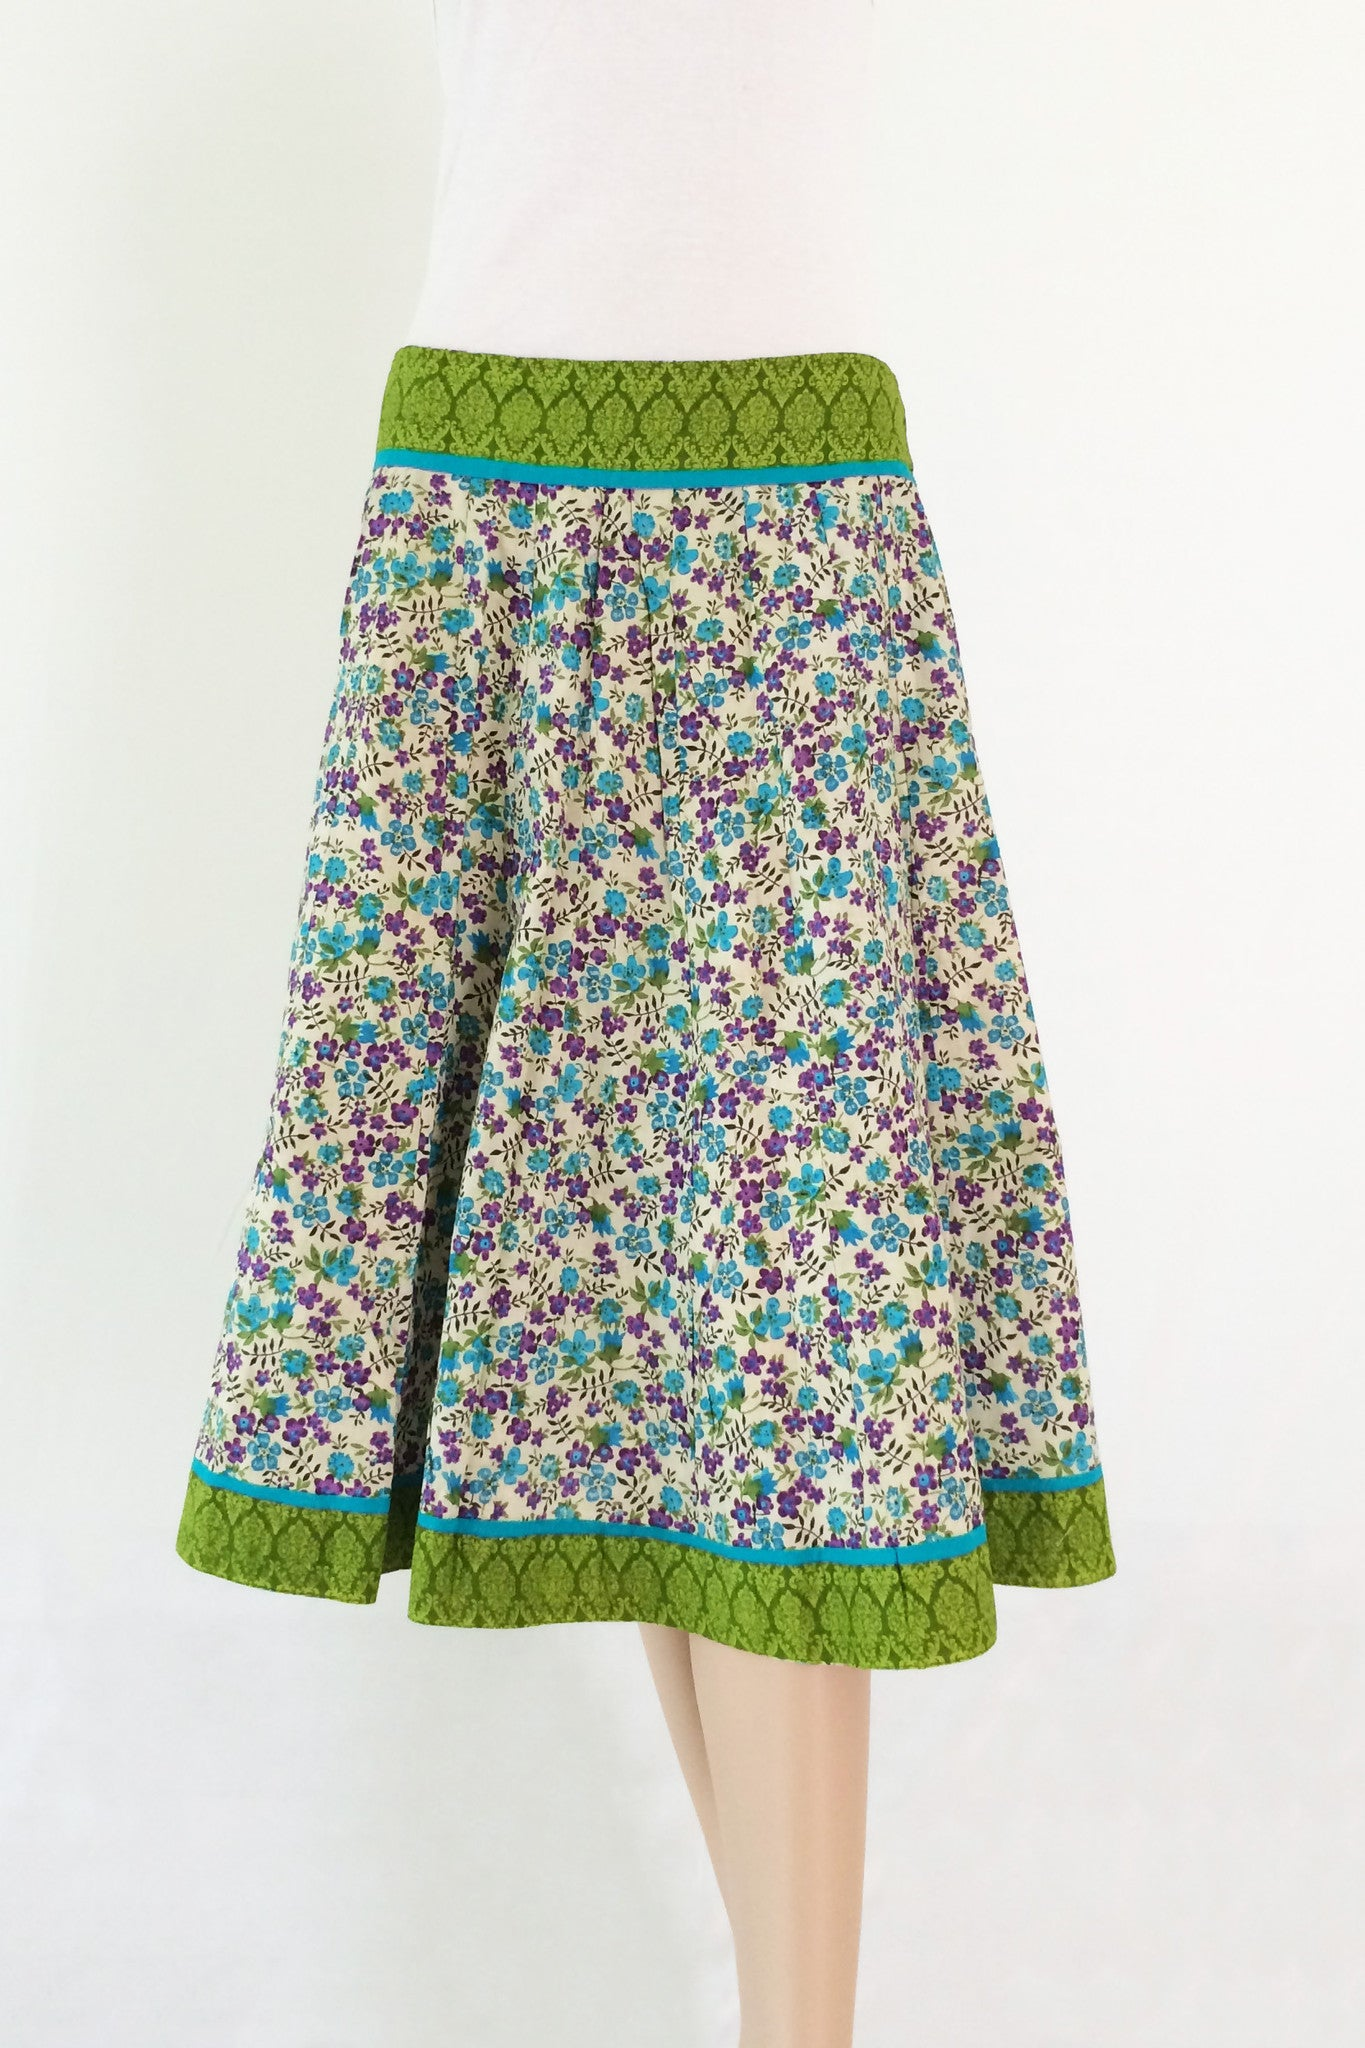 Printed cotton floral below knee skirt